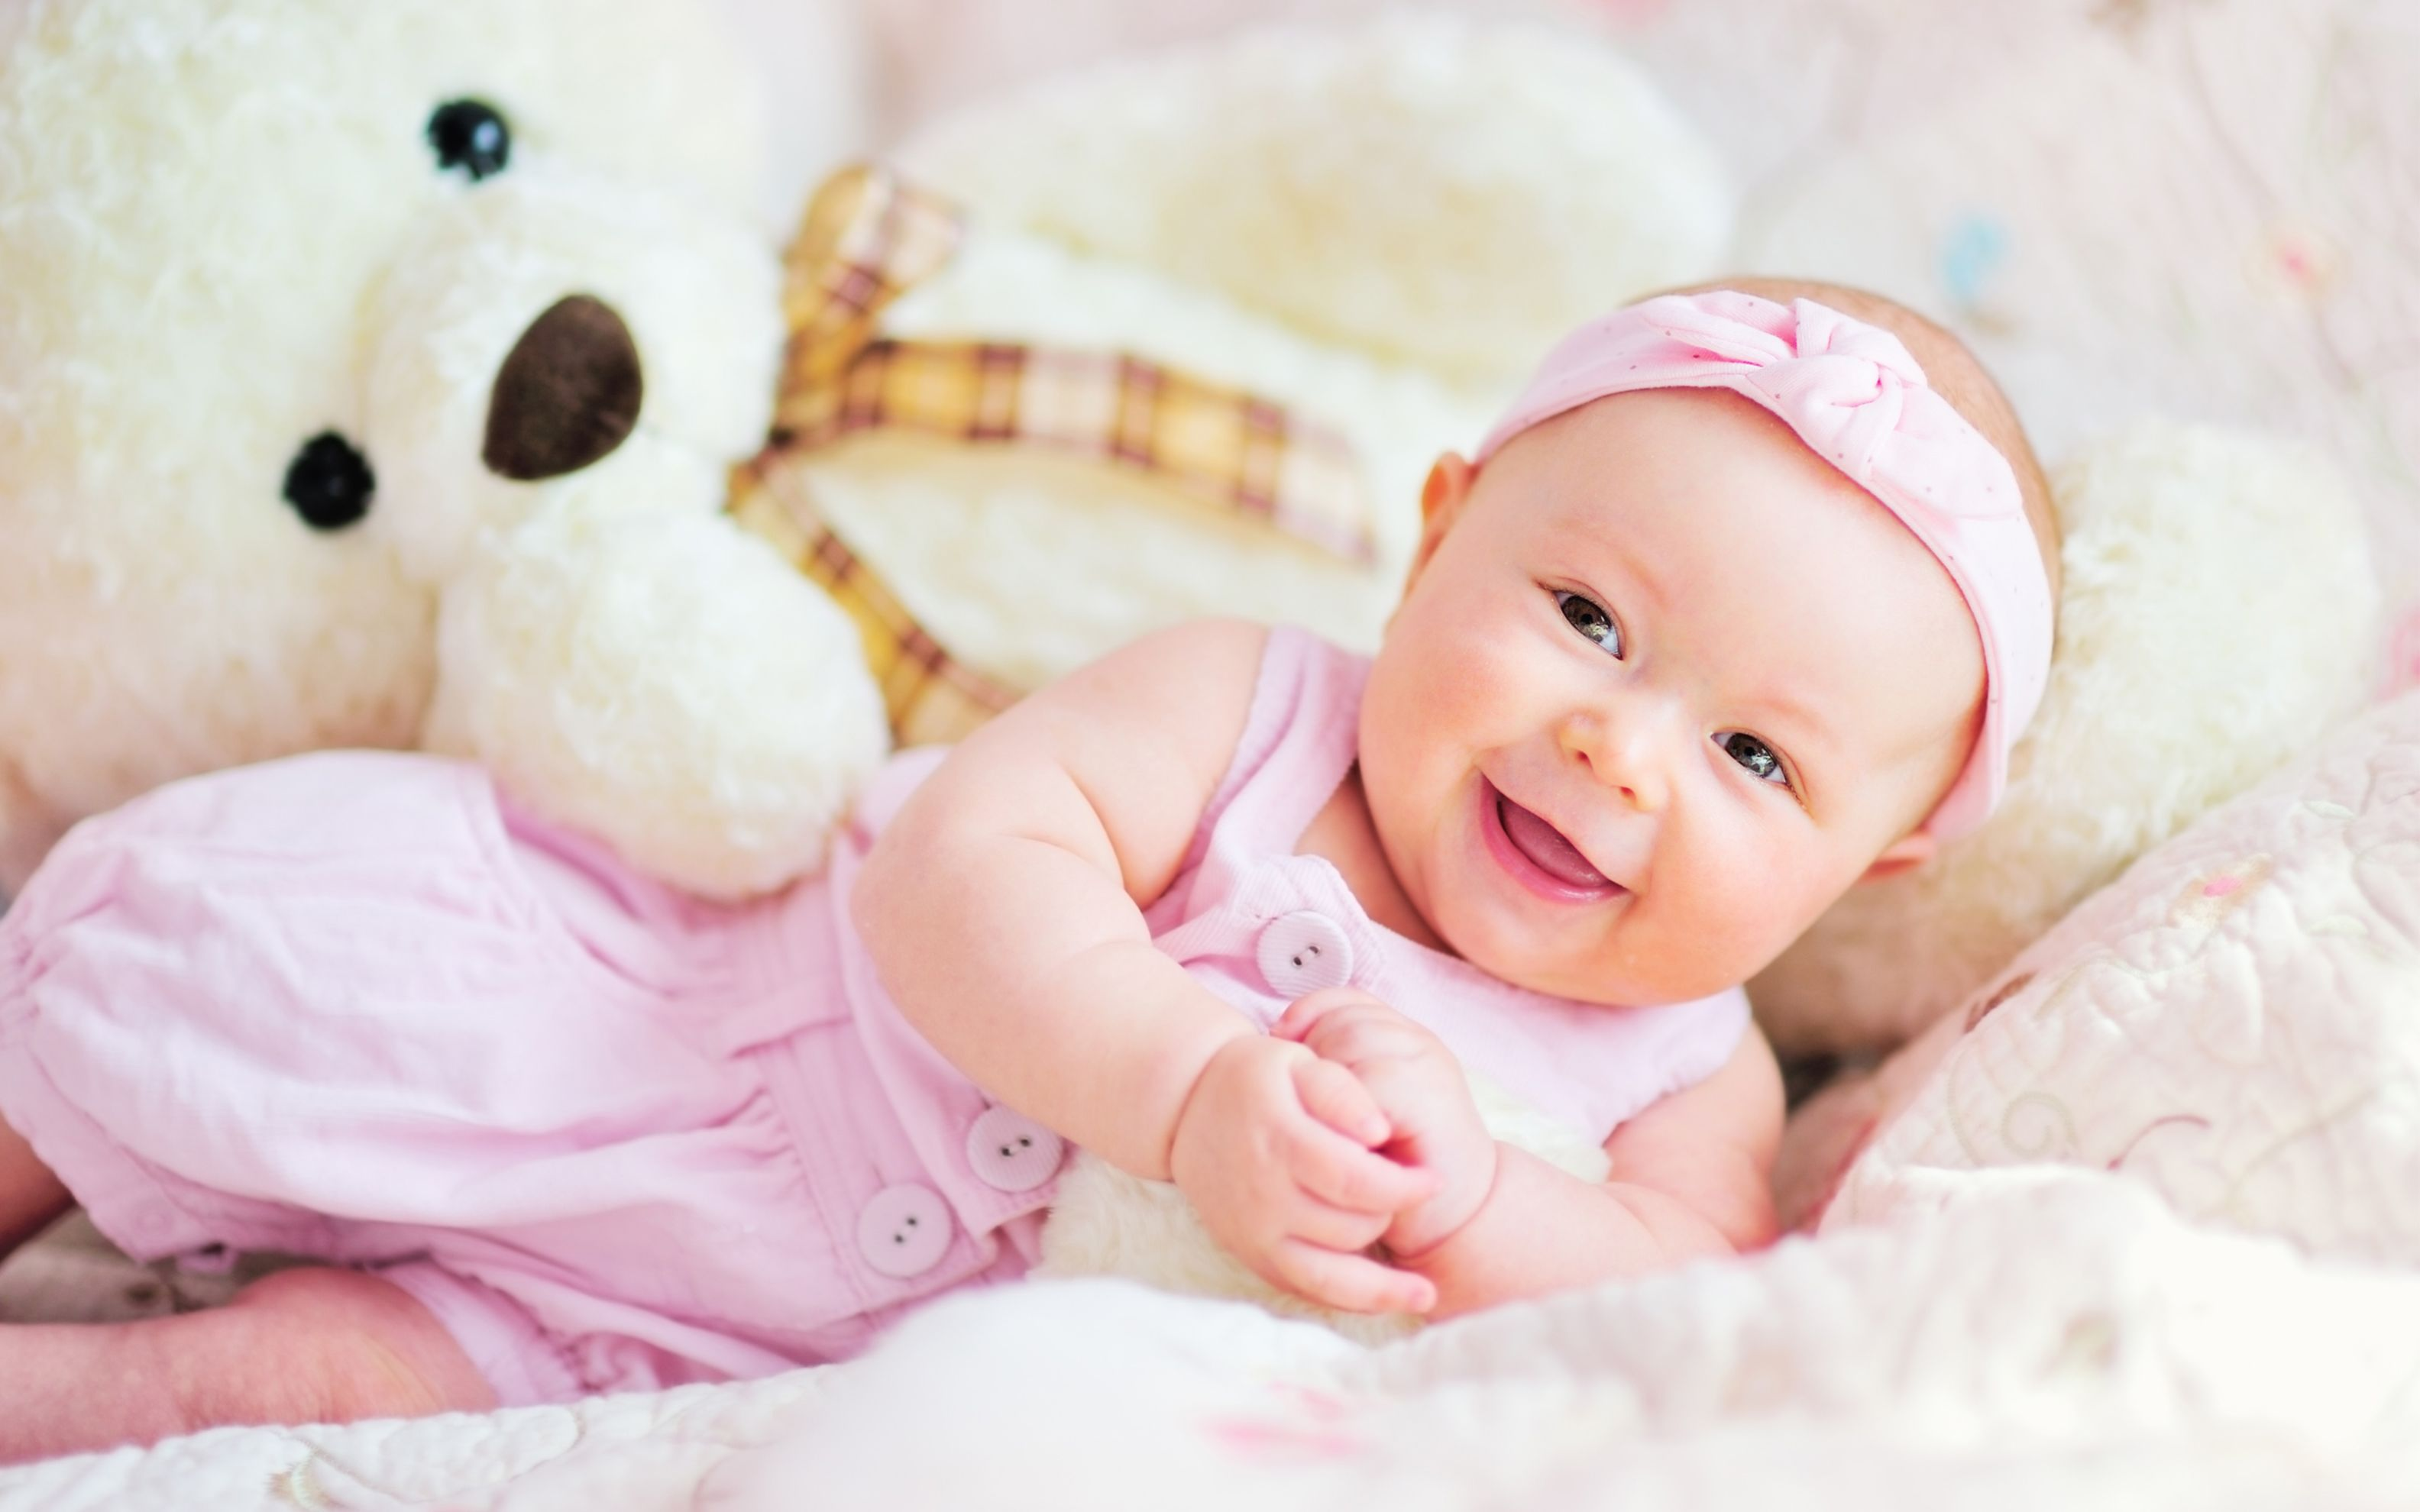 Download free HD Cute Baby Teddy Bear Wide Wallpaper, image